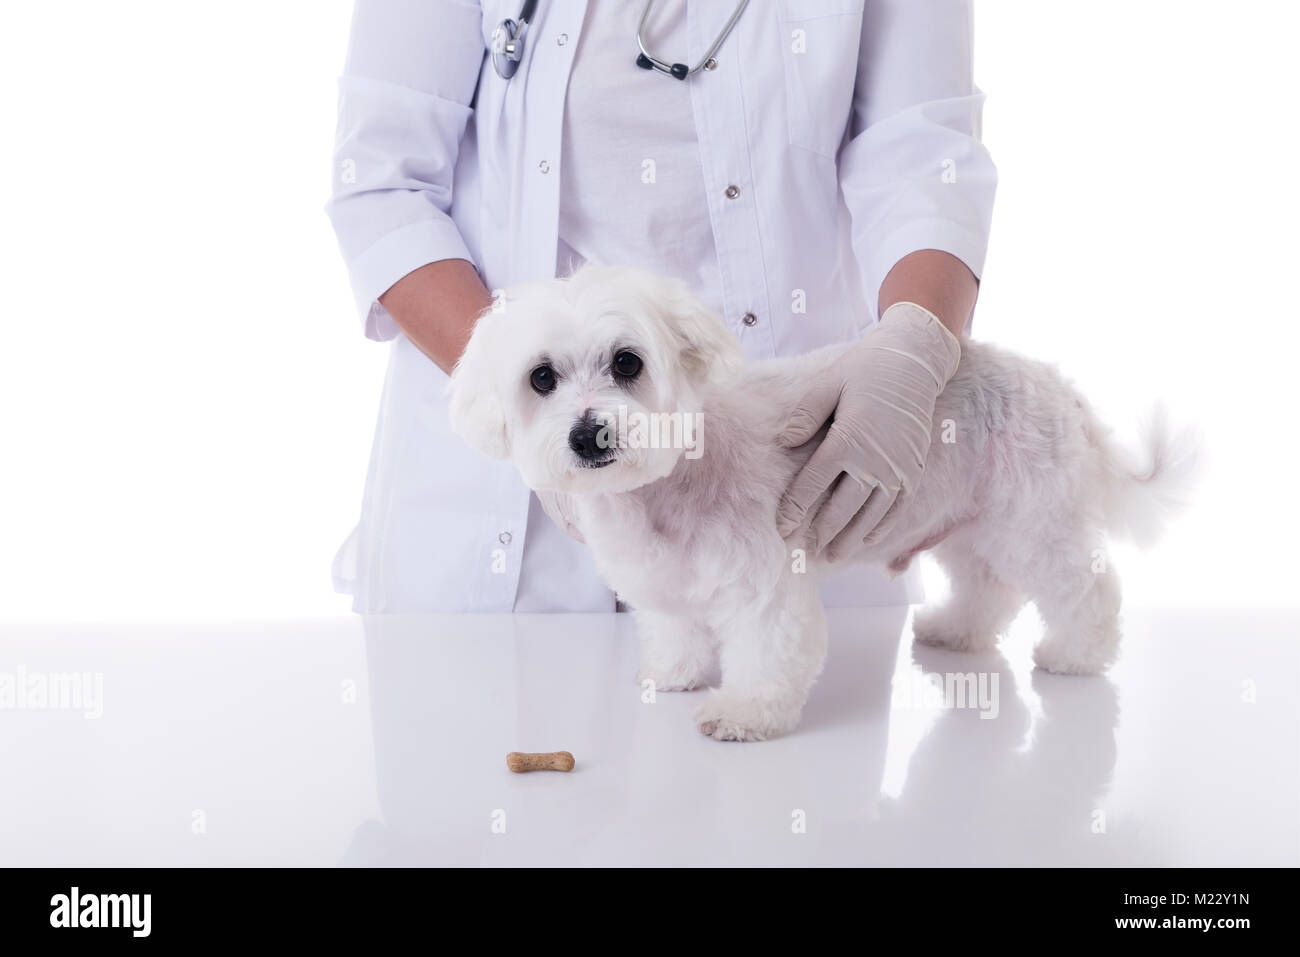 veterinarian examining a cute maltese dog in medical table with biscuit, isolated over white background - Stock Image